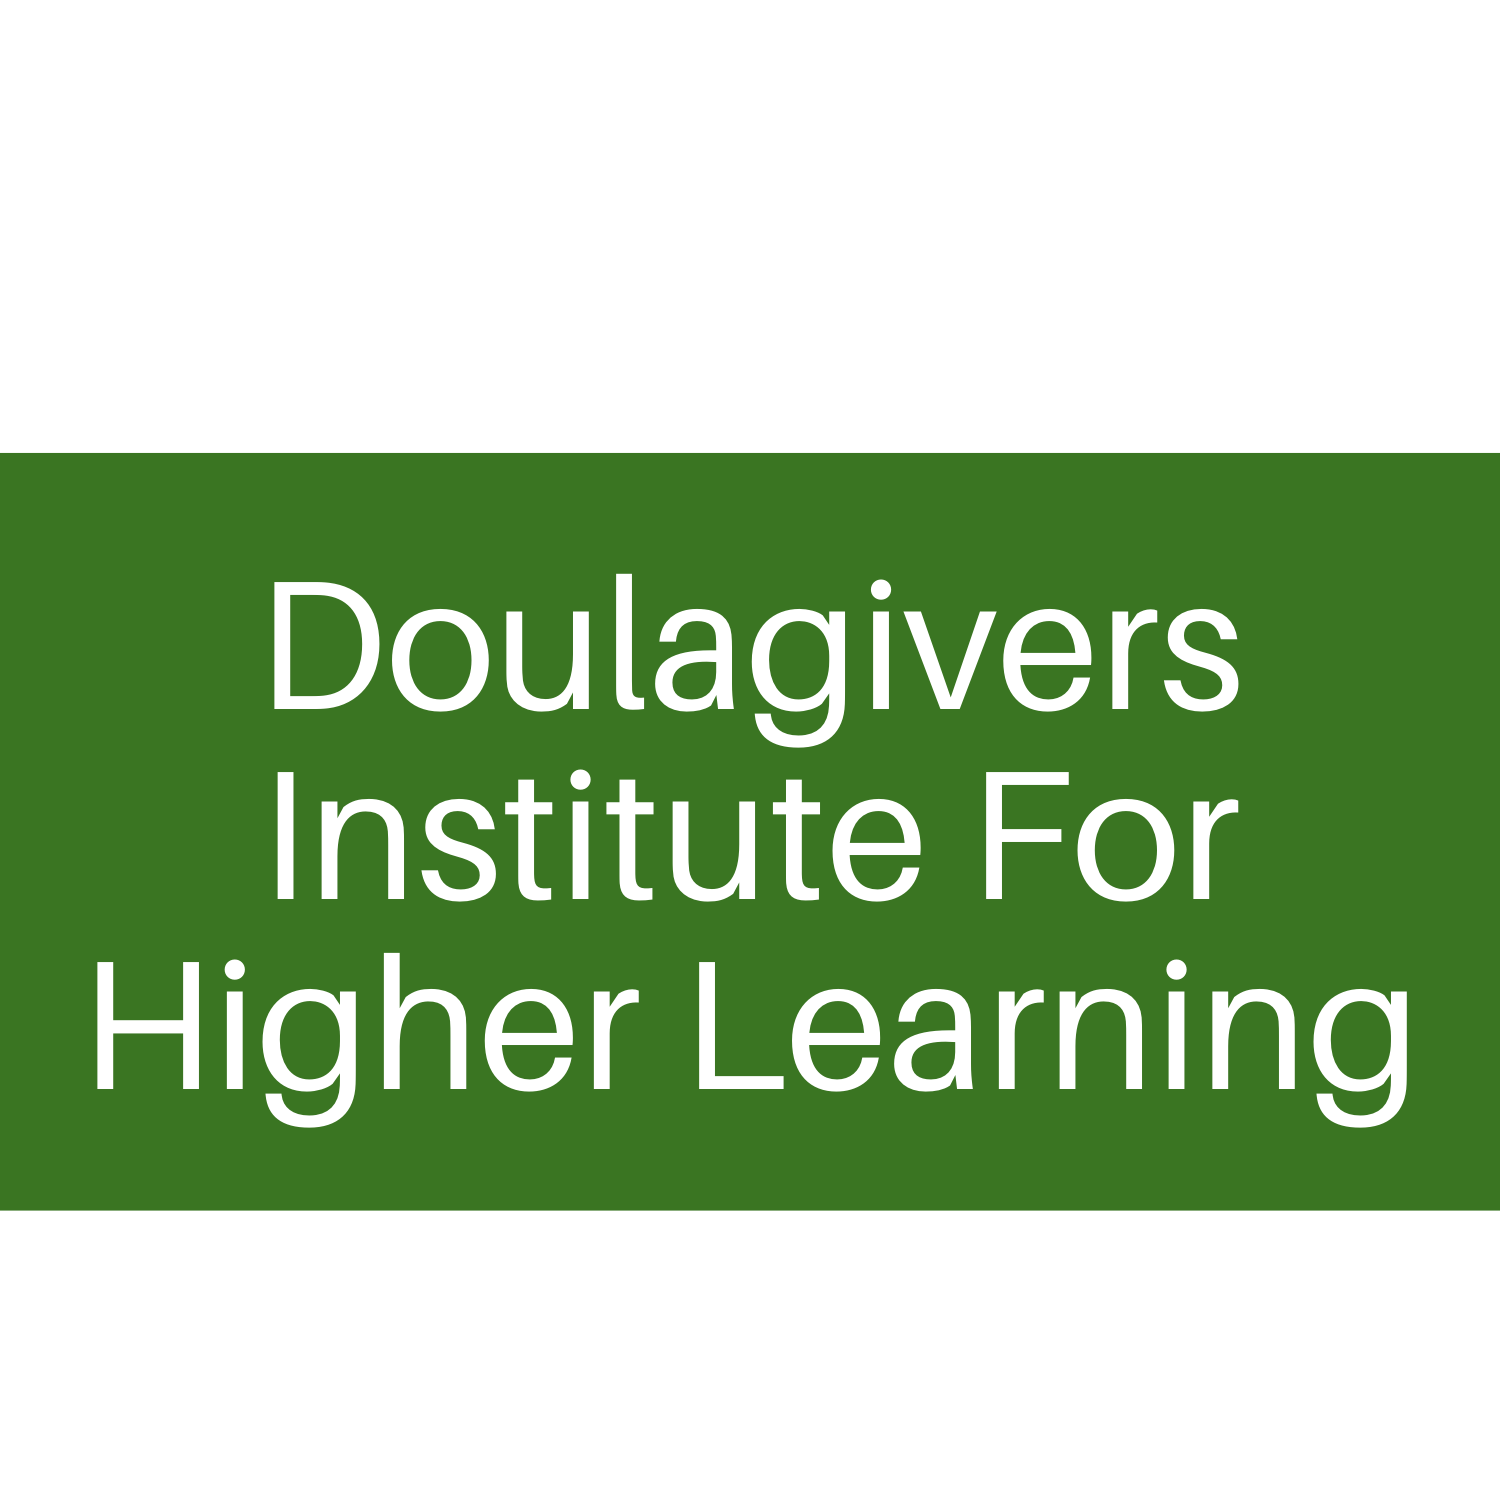 Doulagivers Institute For Higher Learning site